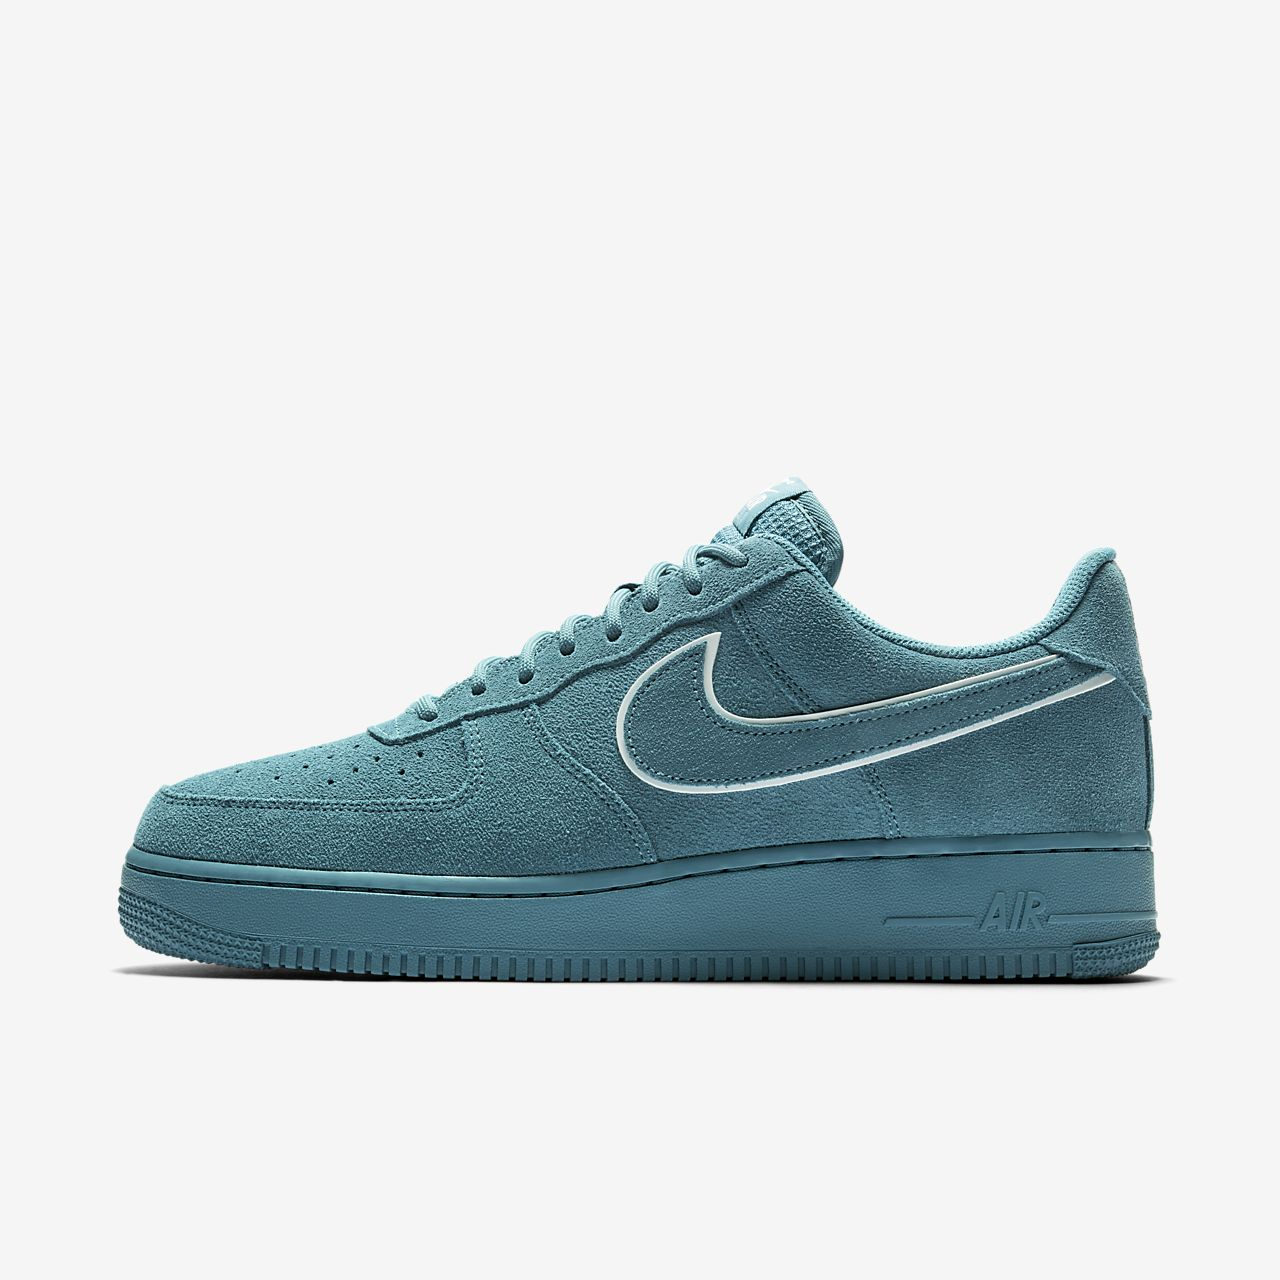 nike men's air force 1 07 nz